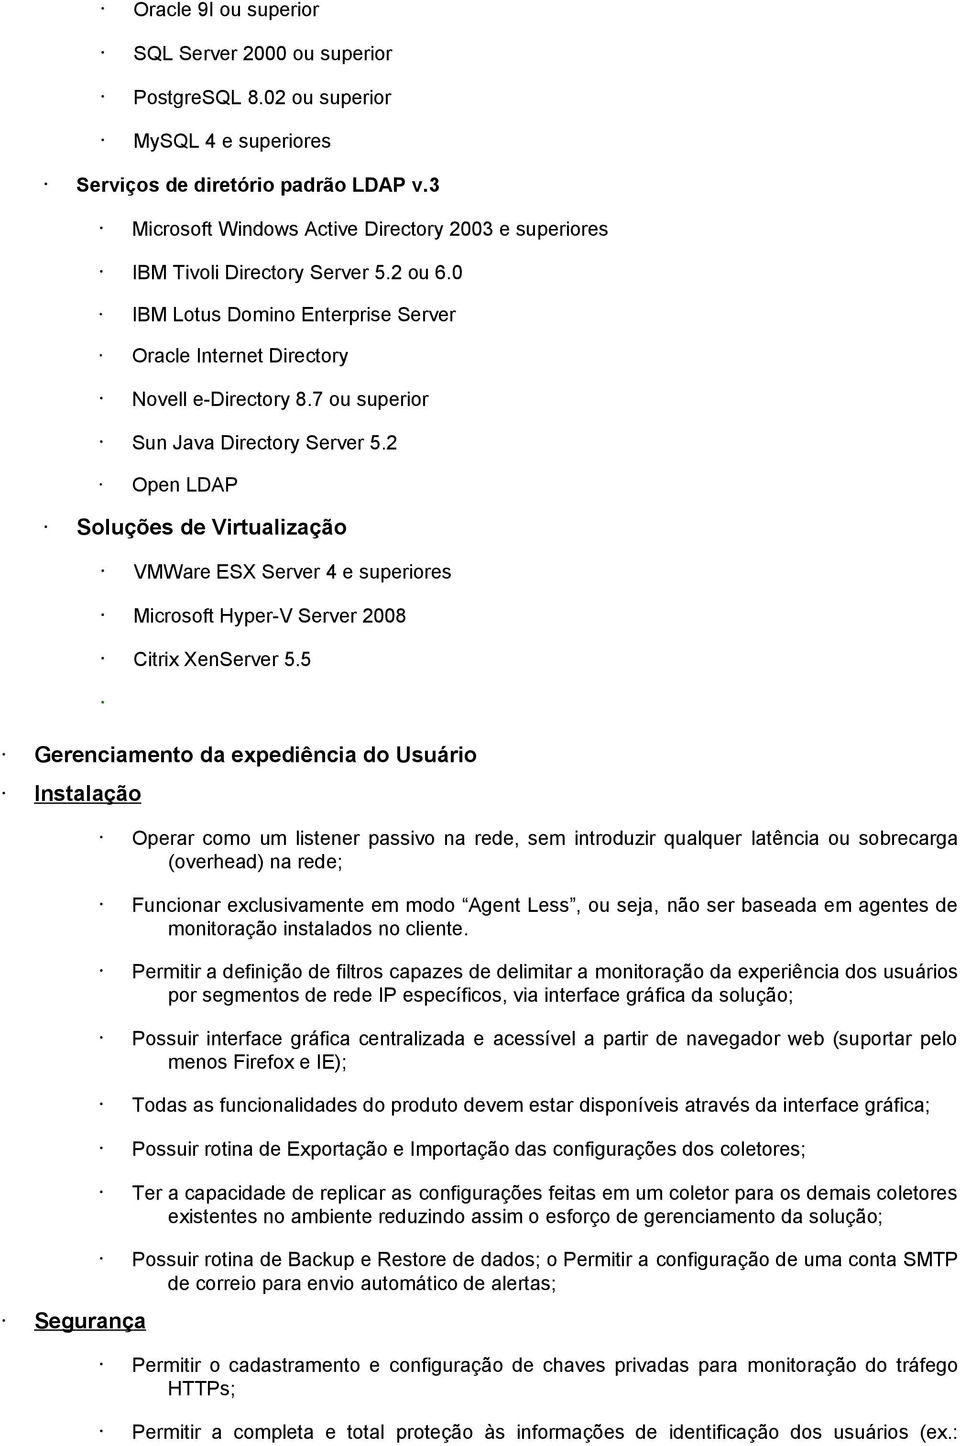 7 ou superior Sun Java Directory Server 5.2 Open LDAP Soluções de Virtualização VMWare ESX Server 4 e superiores Microsoft Hyper-V Server 2008 Citrix XenServer 5.